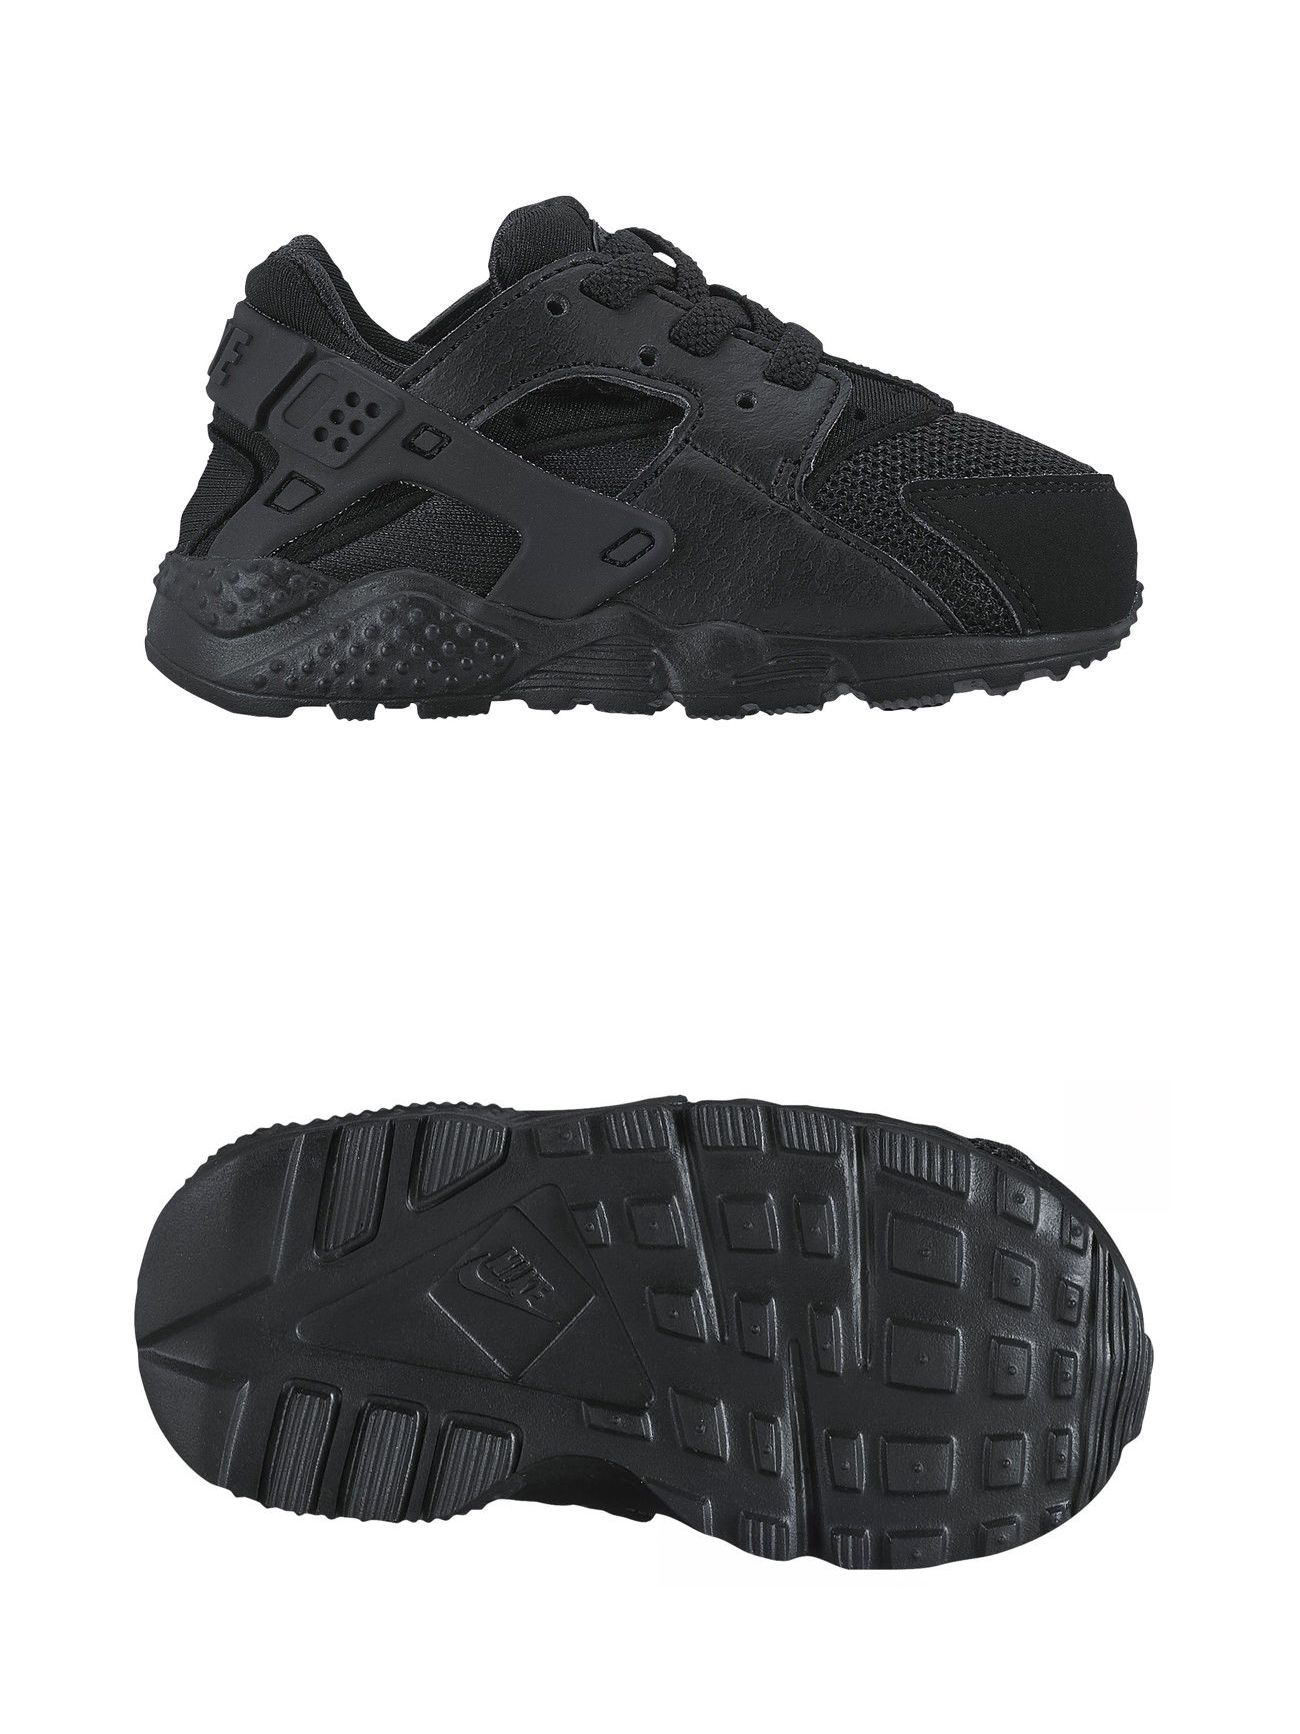 Baby Shoes 147285: New Nike Huarache Run 704950 016 Td Toddler And Infant Black  Running